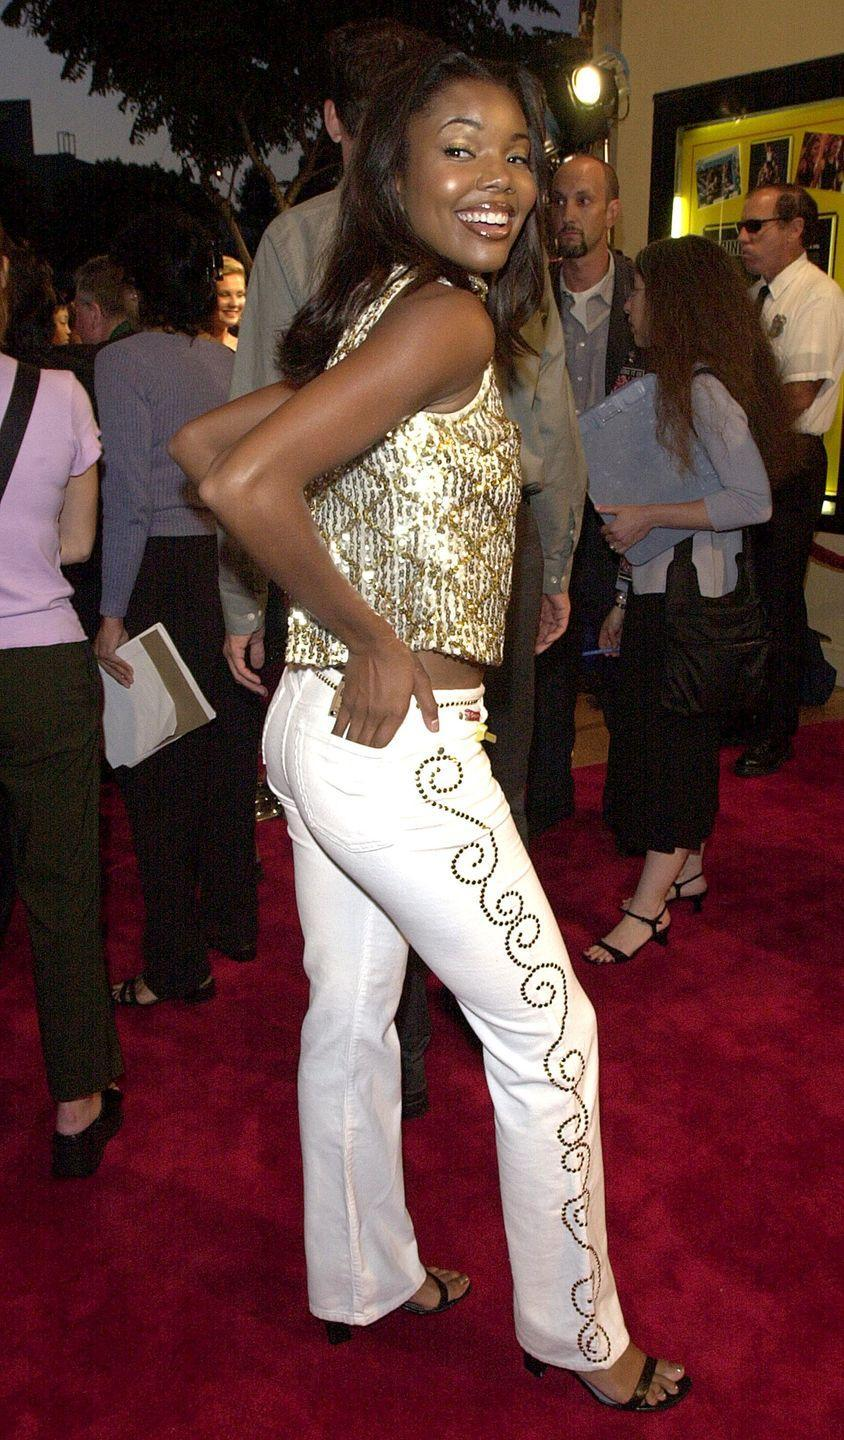 <p>Gabrielle def brought *it* in a pair of bedazzled white pants to the premiere of her movie <em>Bring It On</em>.</p>